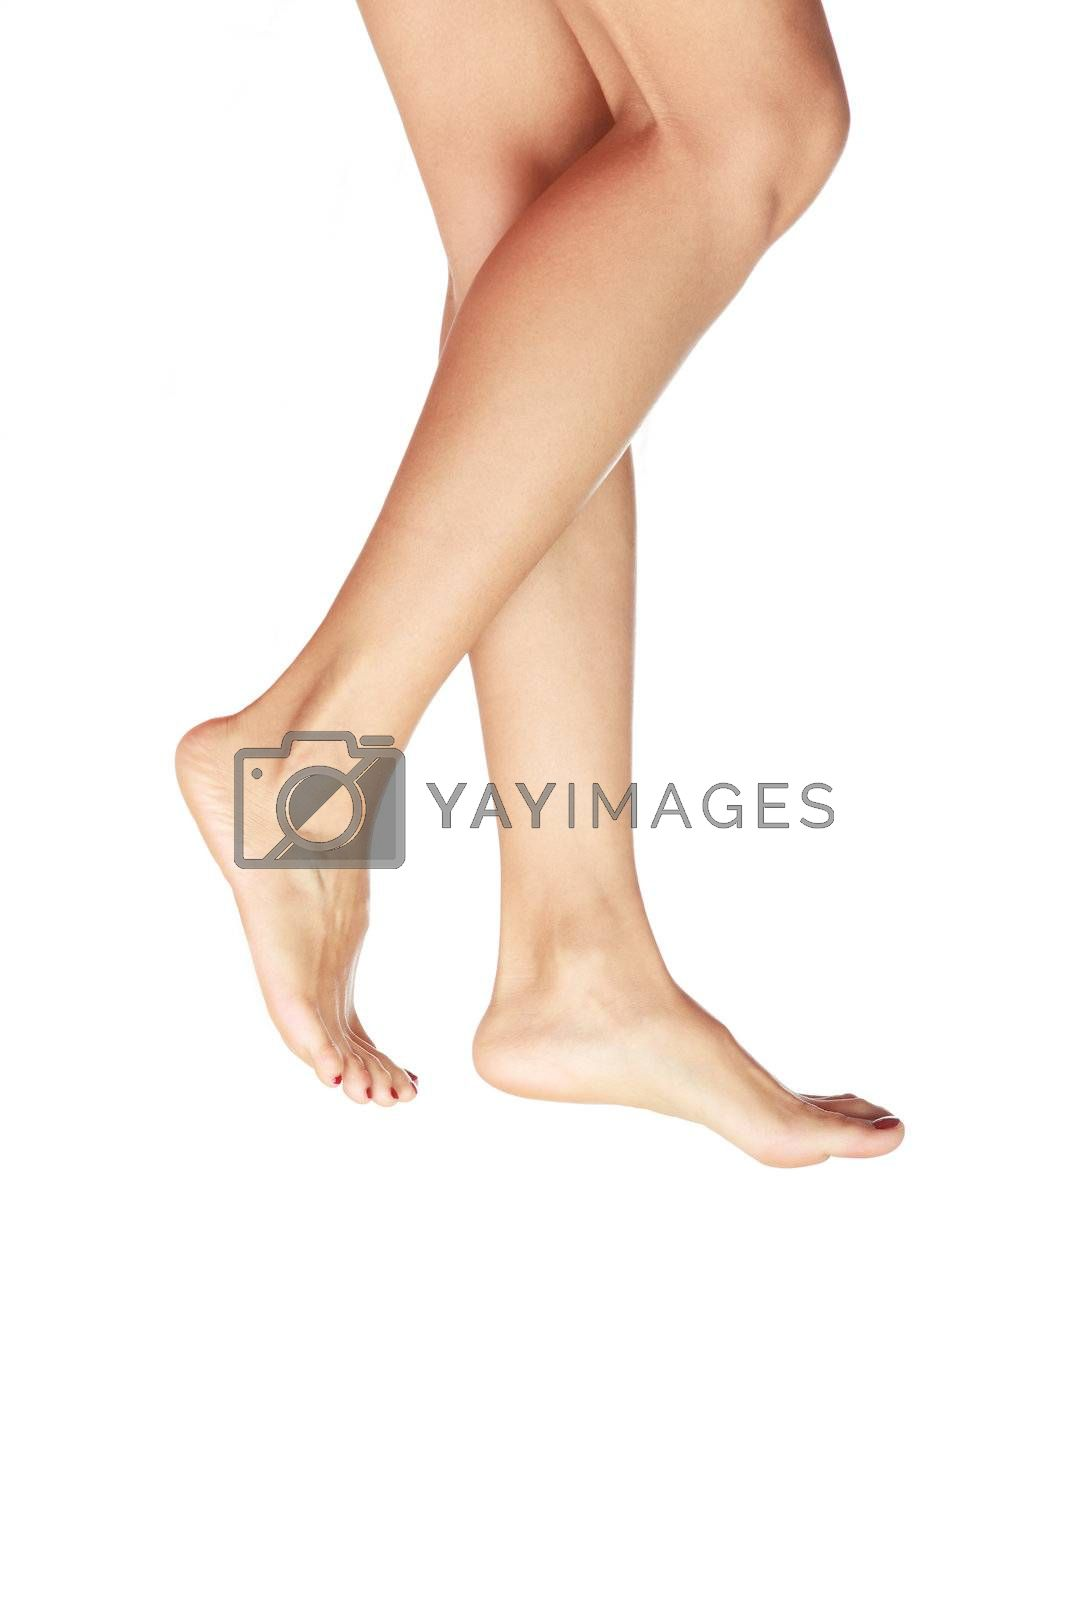 Barefoot woman legs walking on a white background